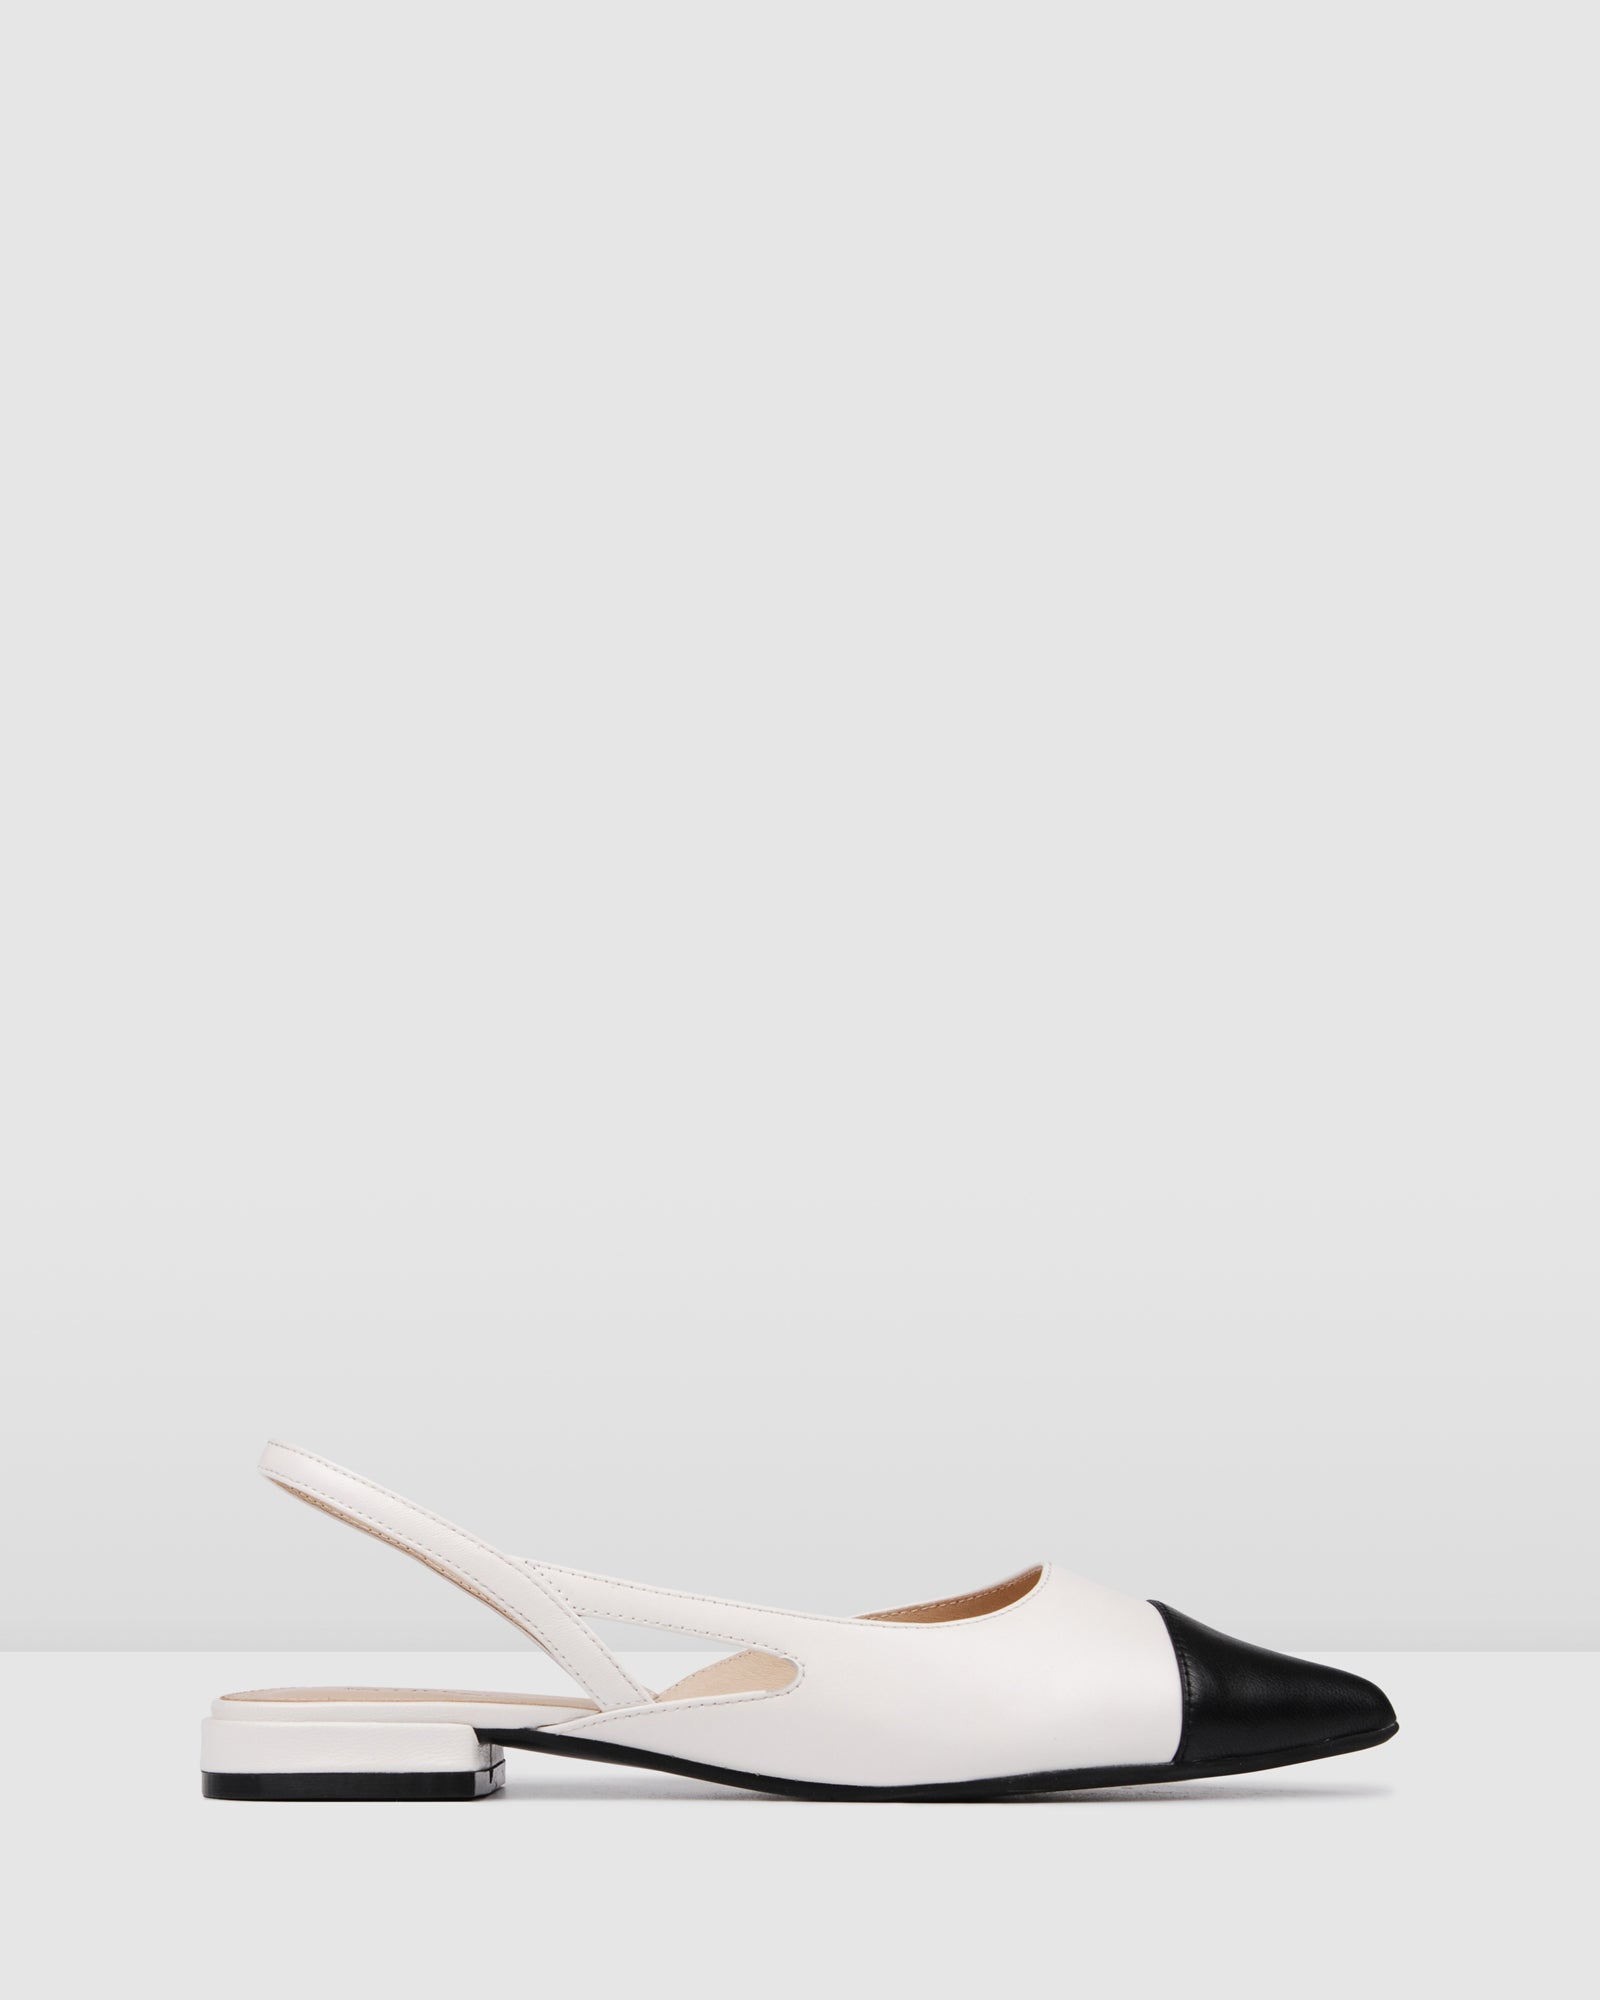 CALLISTA DRESS FLATS BLACK WHITE LEATHER